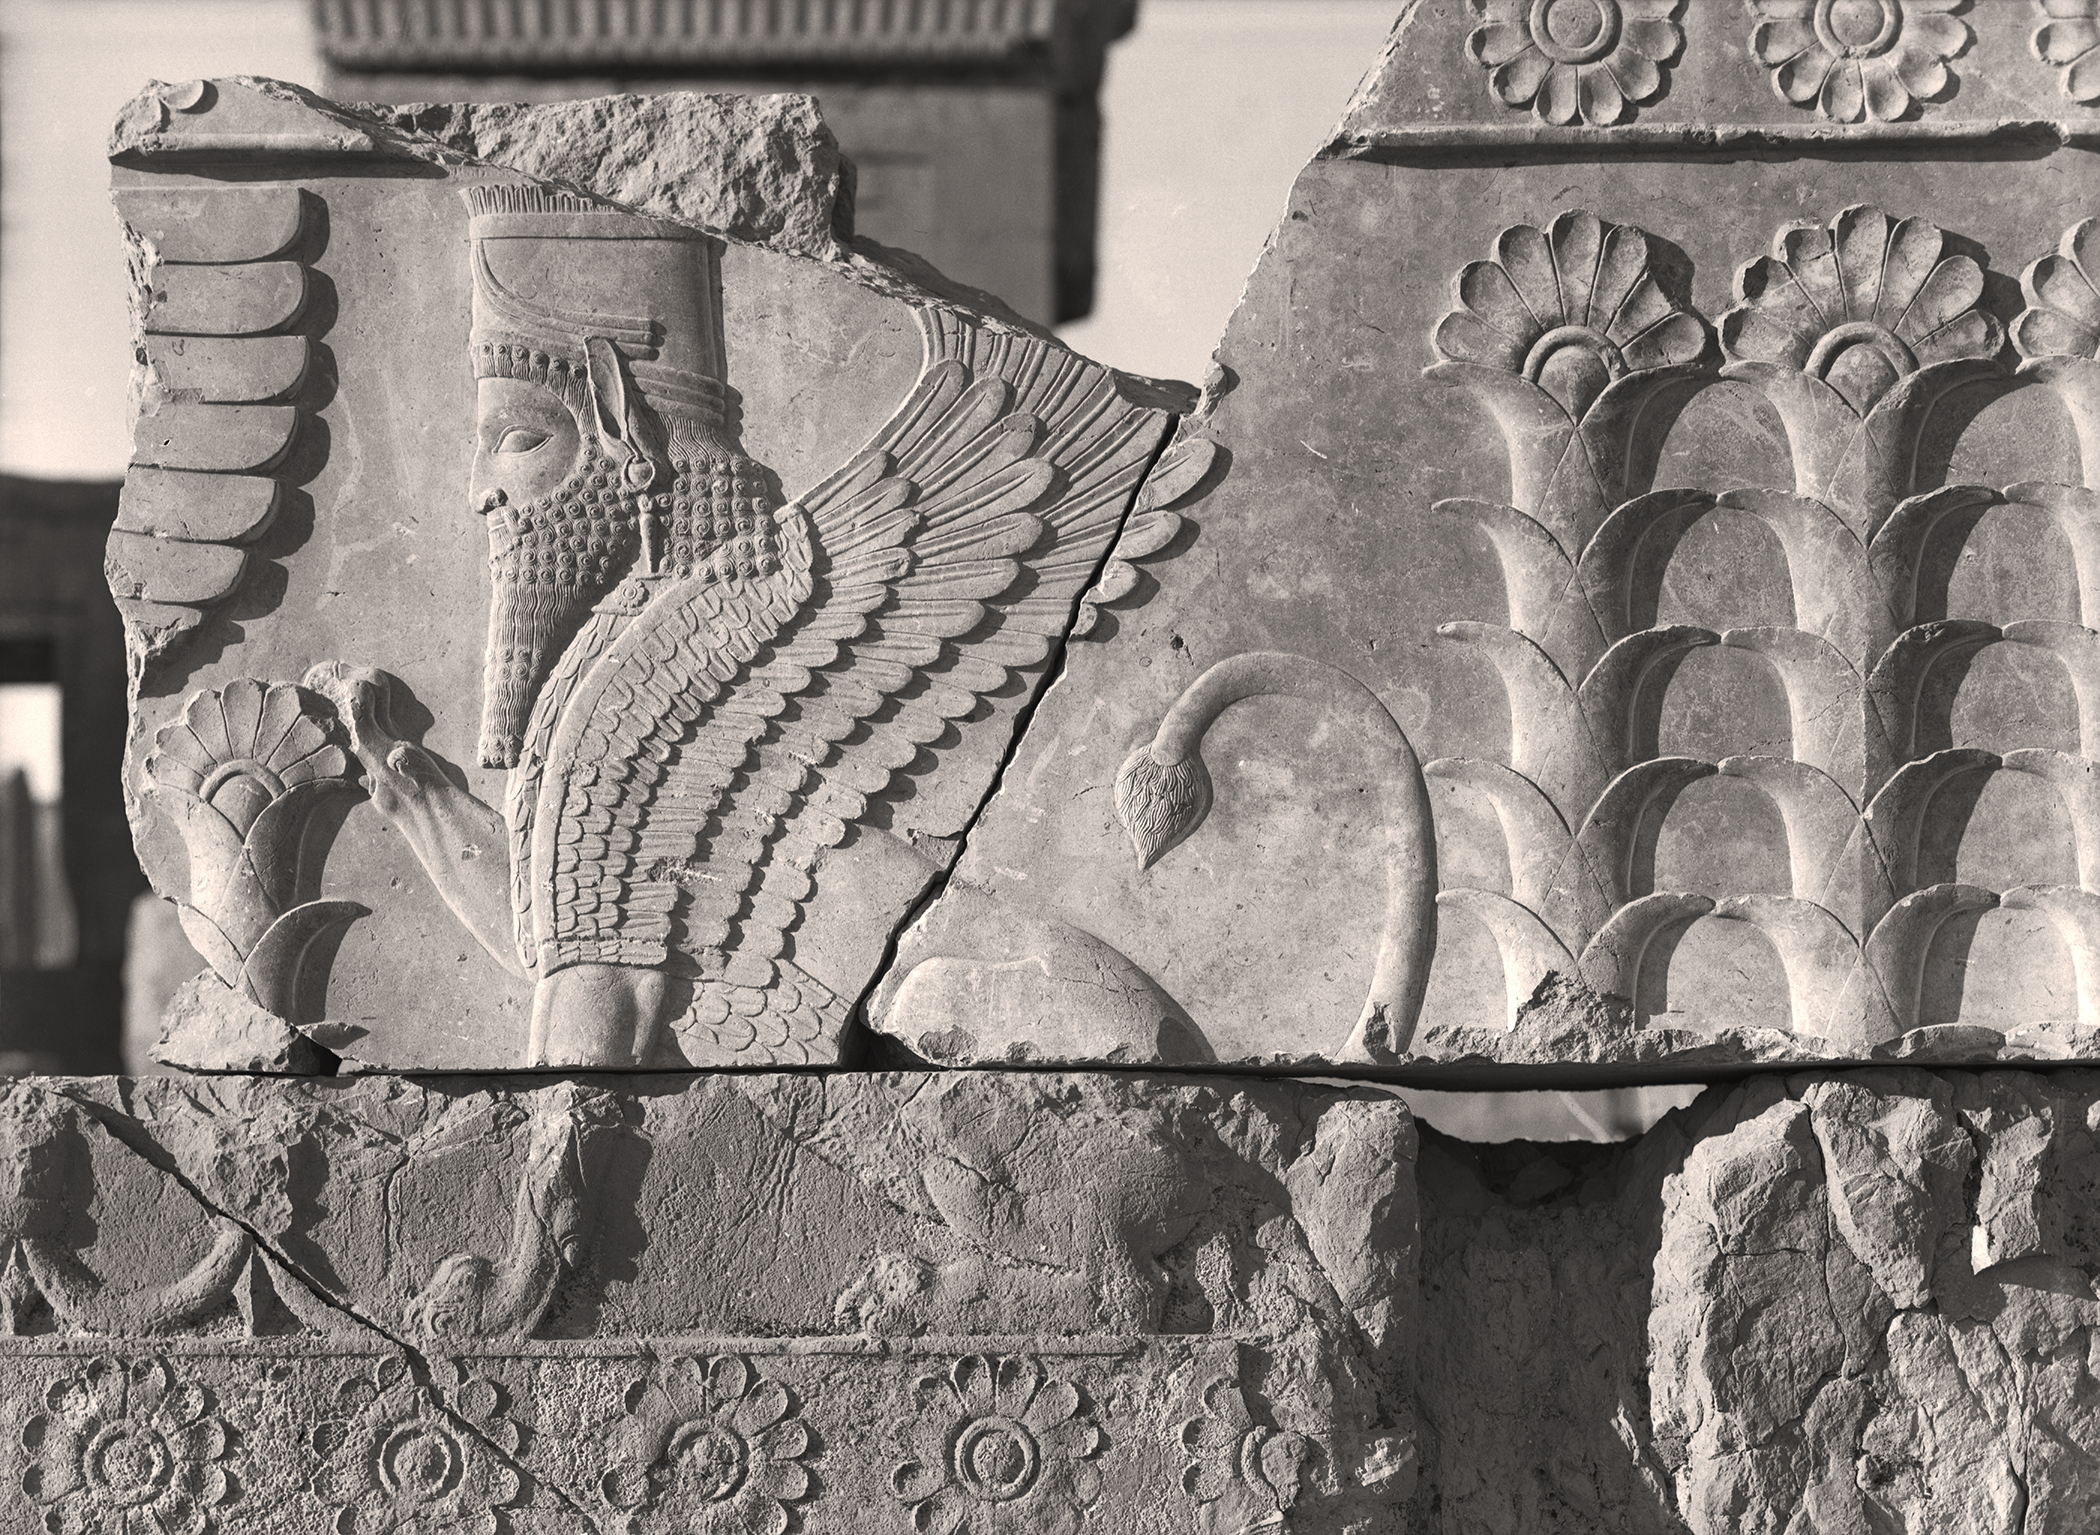 Timely Reminders In Timeless Ruins A Review Of Persepolis Images Of An Empire At The Oriental Institute Newcity Art